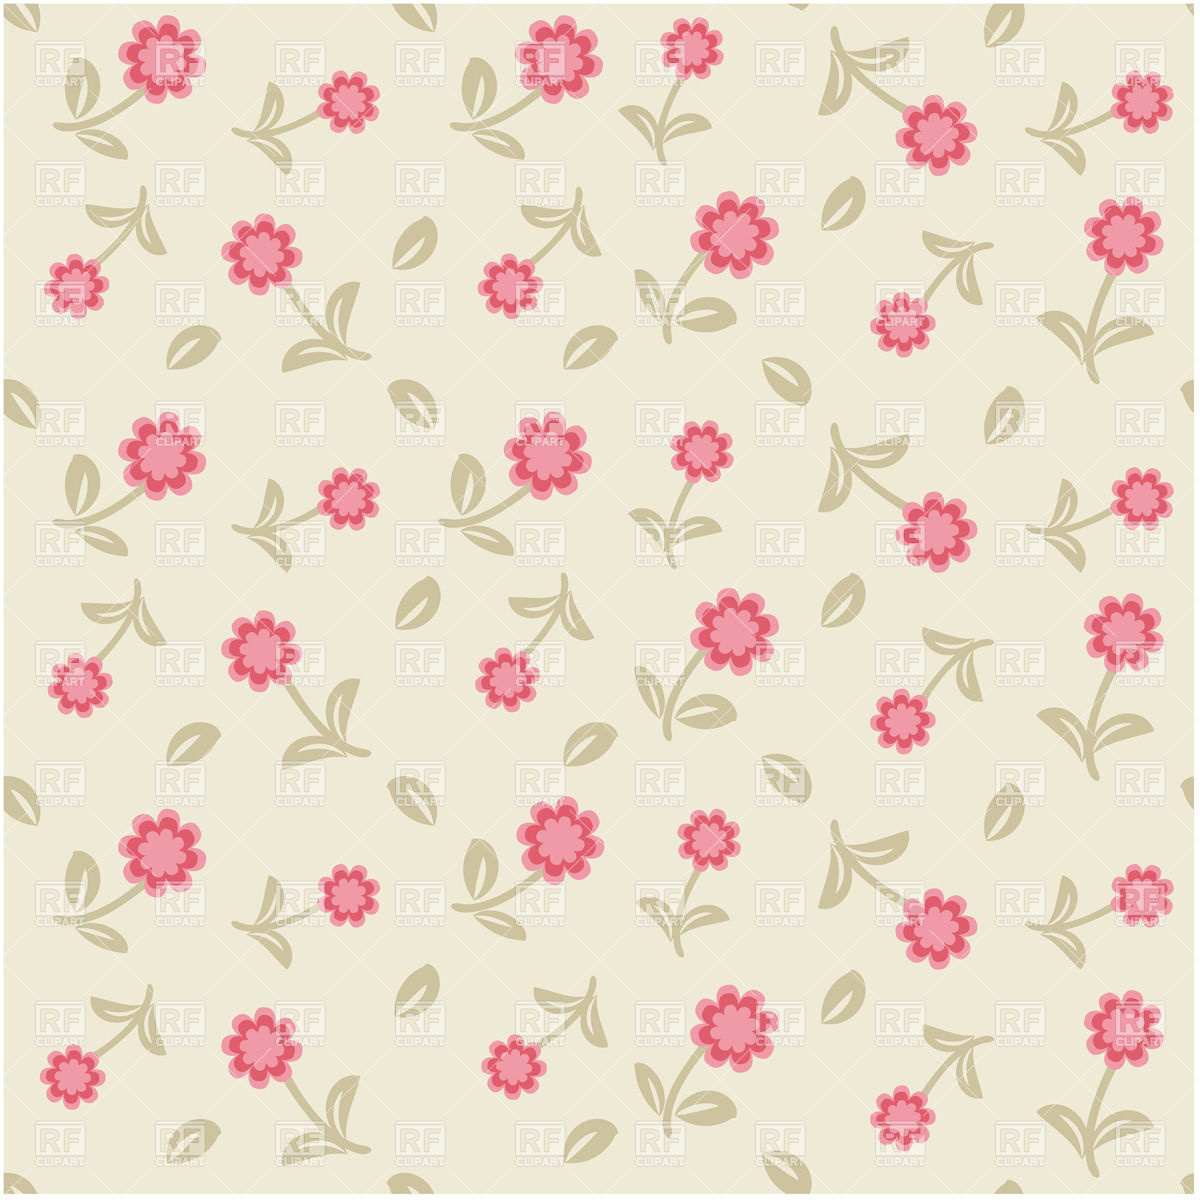 Floral Seamless Background Download Royalty Free Vector Clipart  Eps